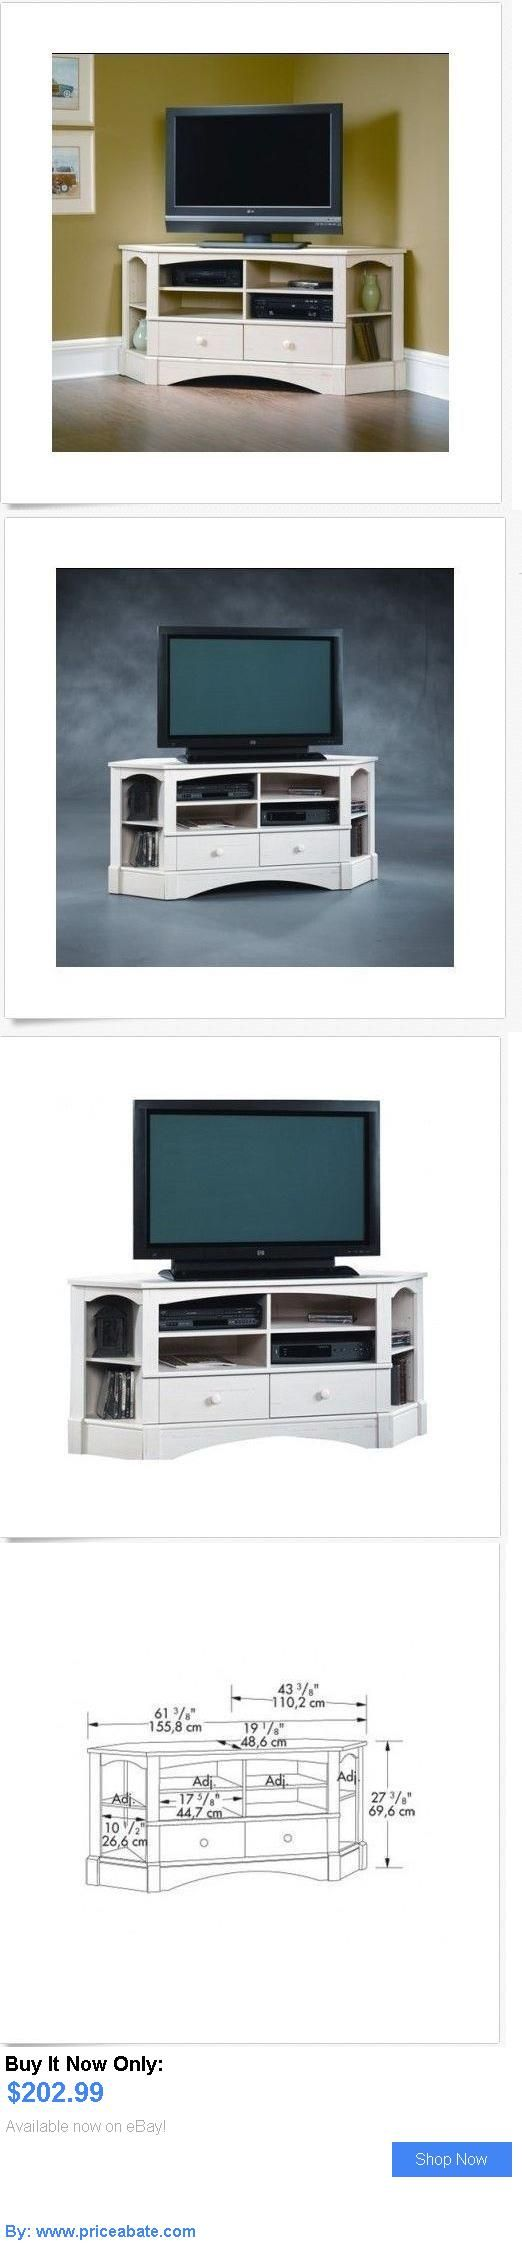 Entertainment Units, TV Stands: Home Entertainment Corner Tv Stand Cabinet Wood Console Media White Rustic New BUY IT NOW ONLY: $202.99 #priceabateEntertainmentUnitsTVStands OR #priceabate